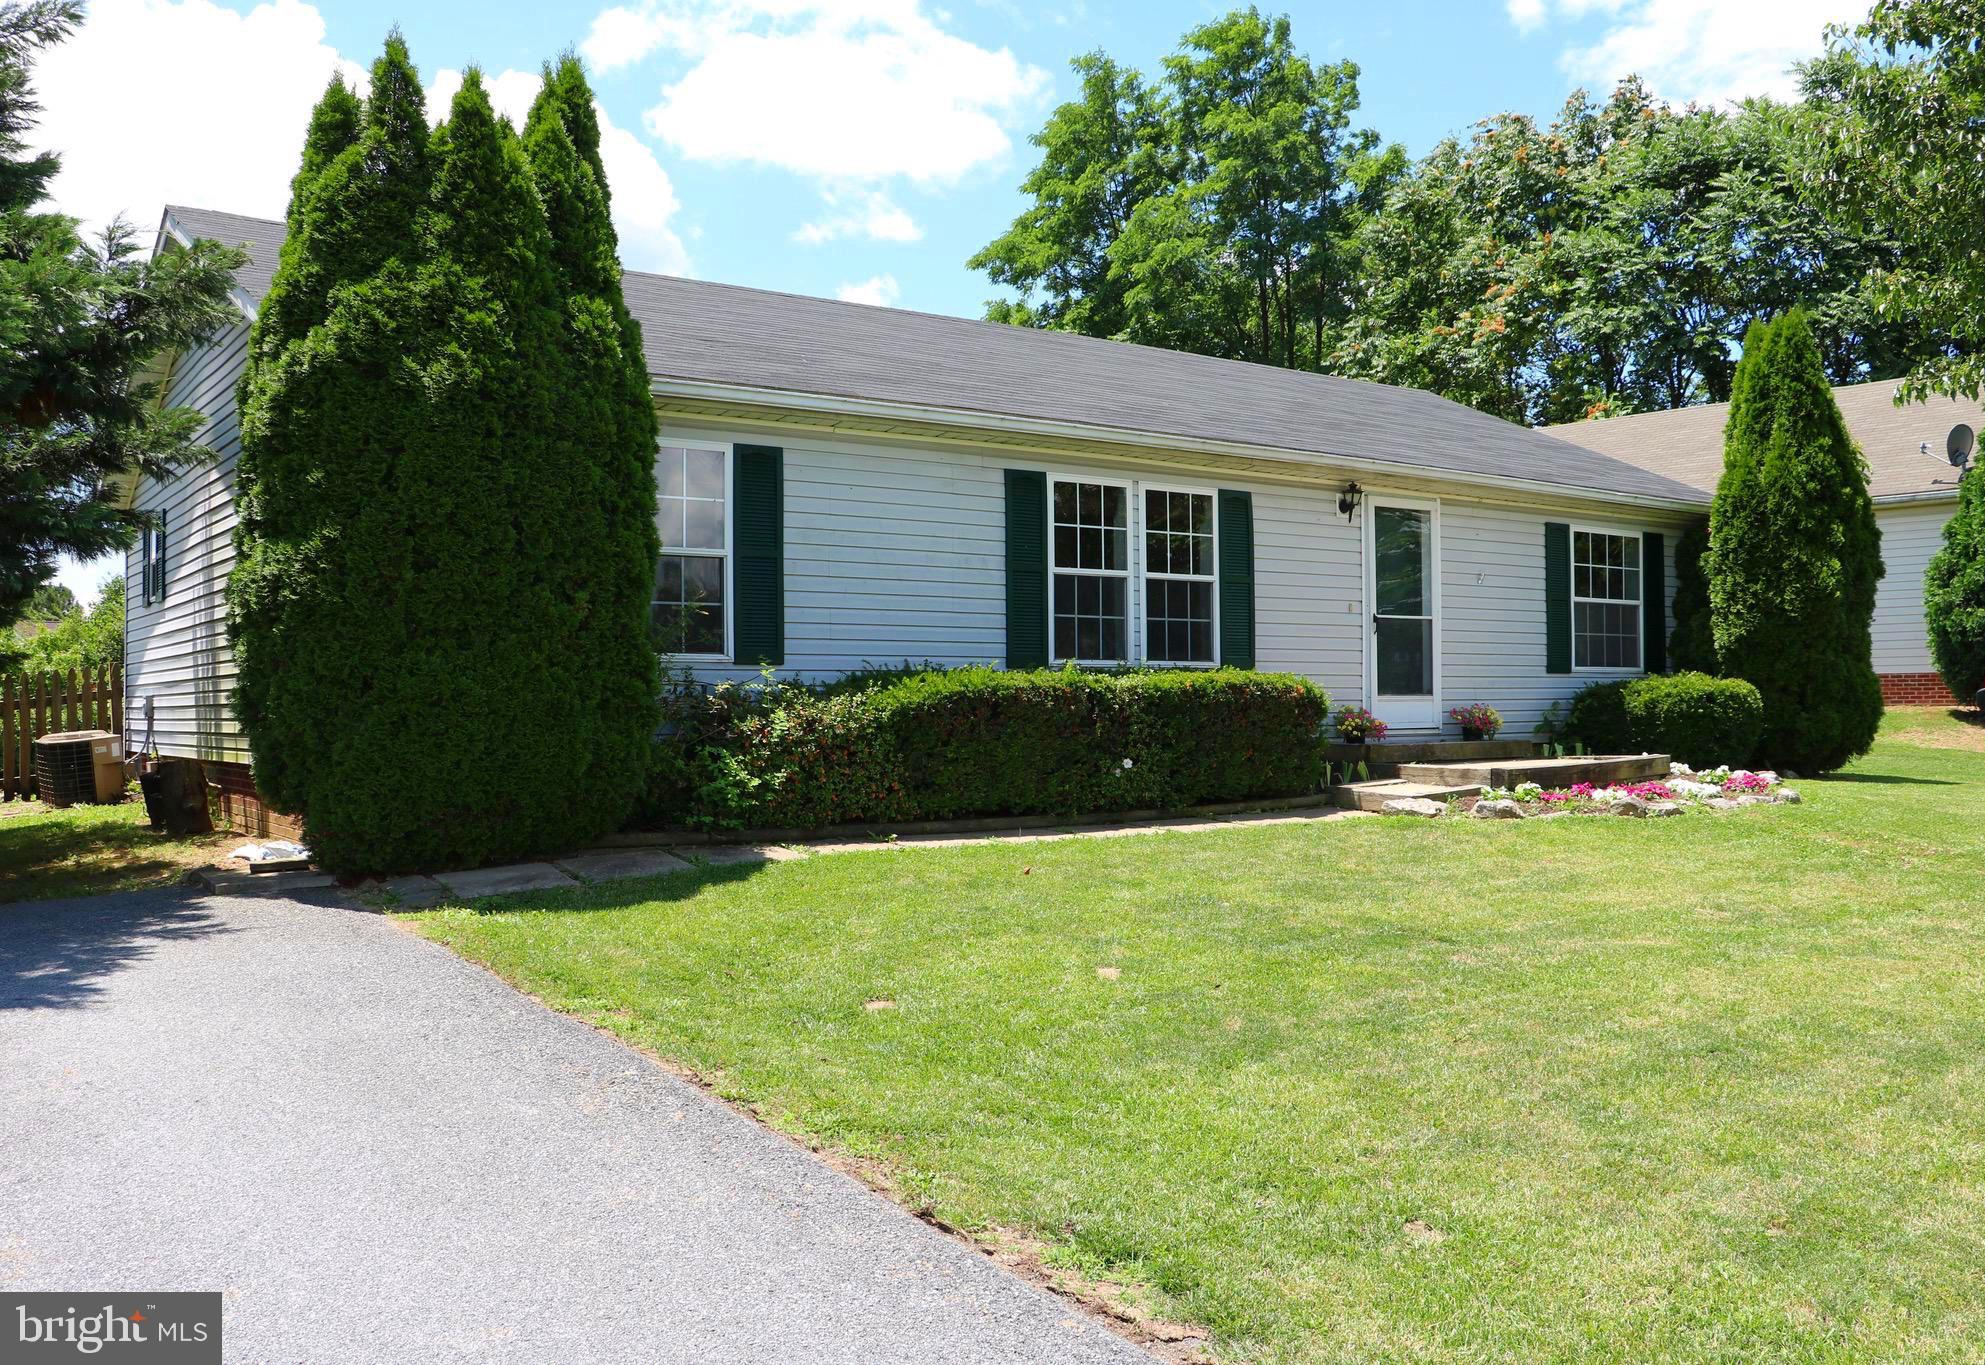 A great opportunity to own a singe family home at a fabulous price. Landscaped yard and oversized de